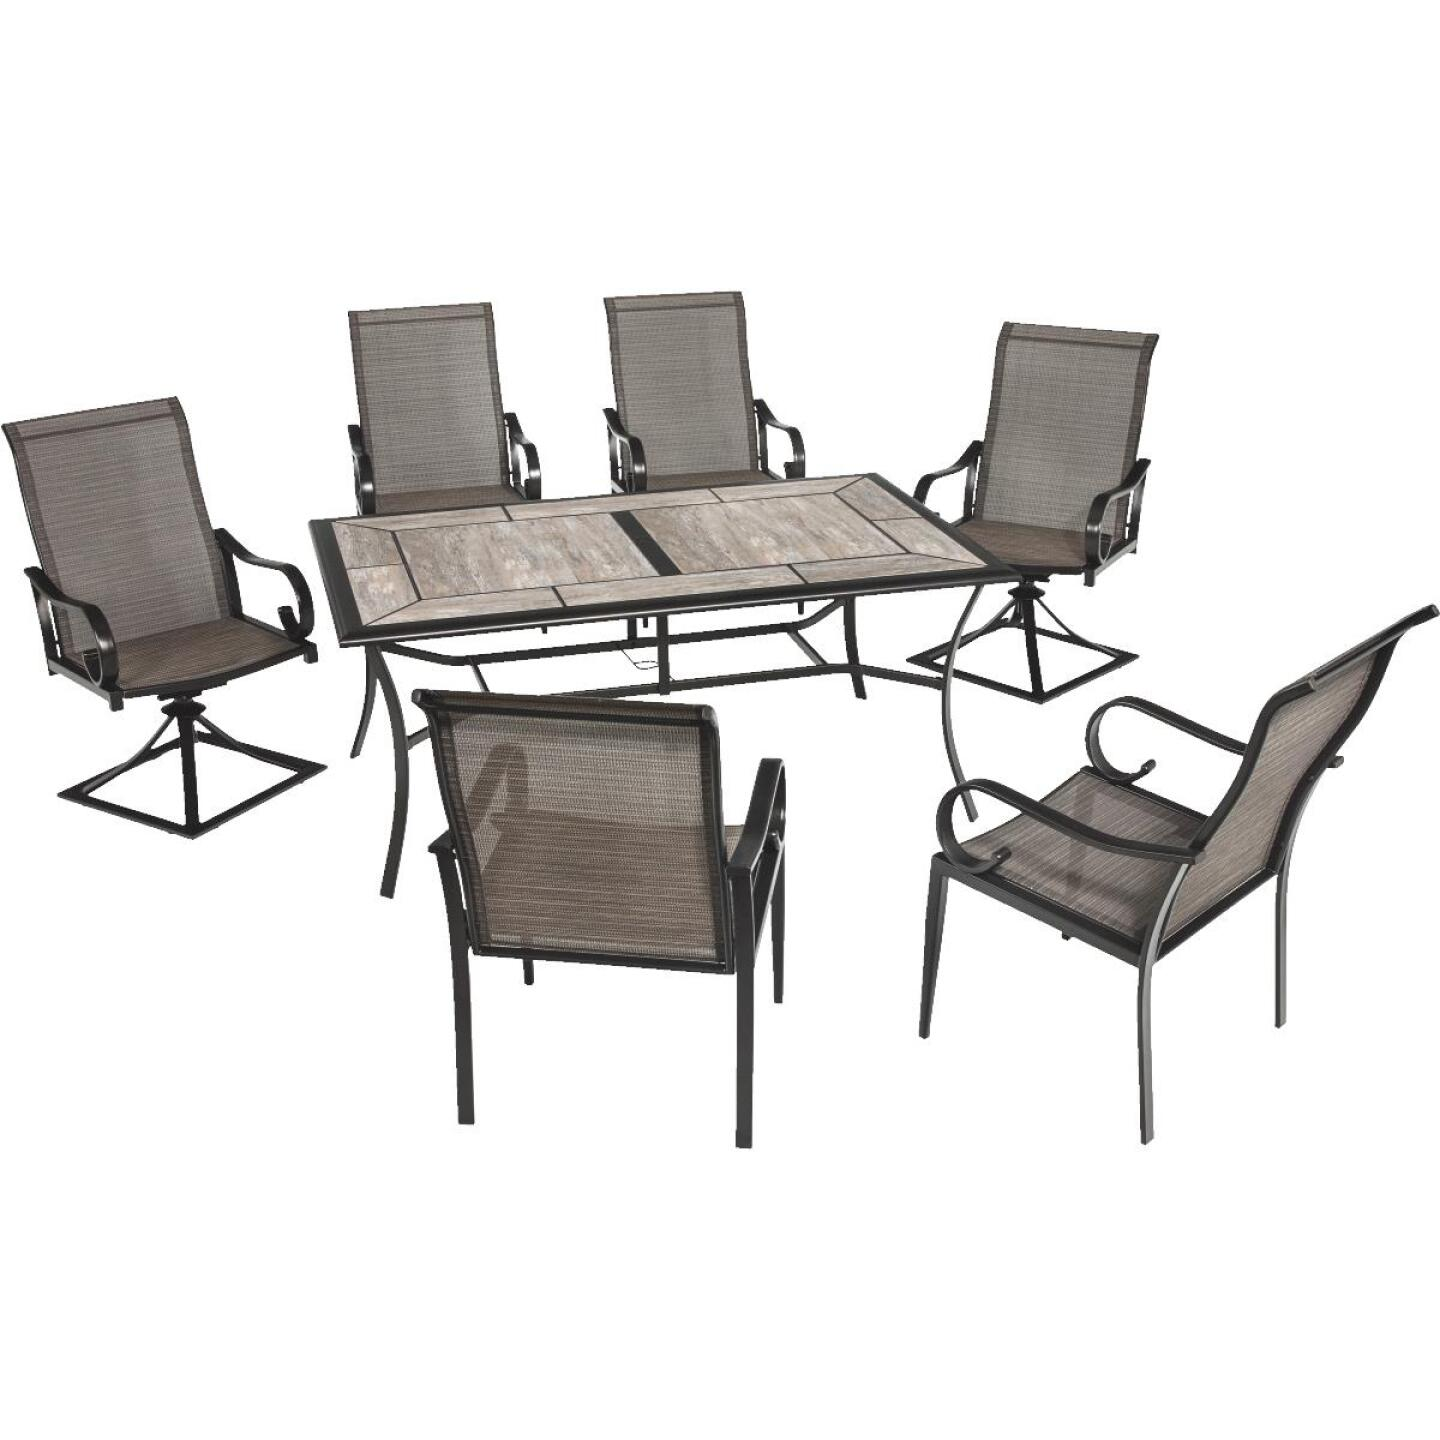 Outdoor Expressions Berkshire 7-Piece Dining Set Image 217